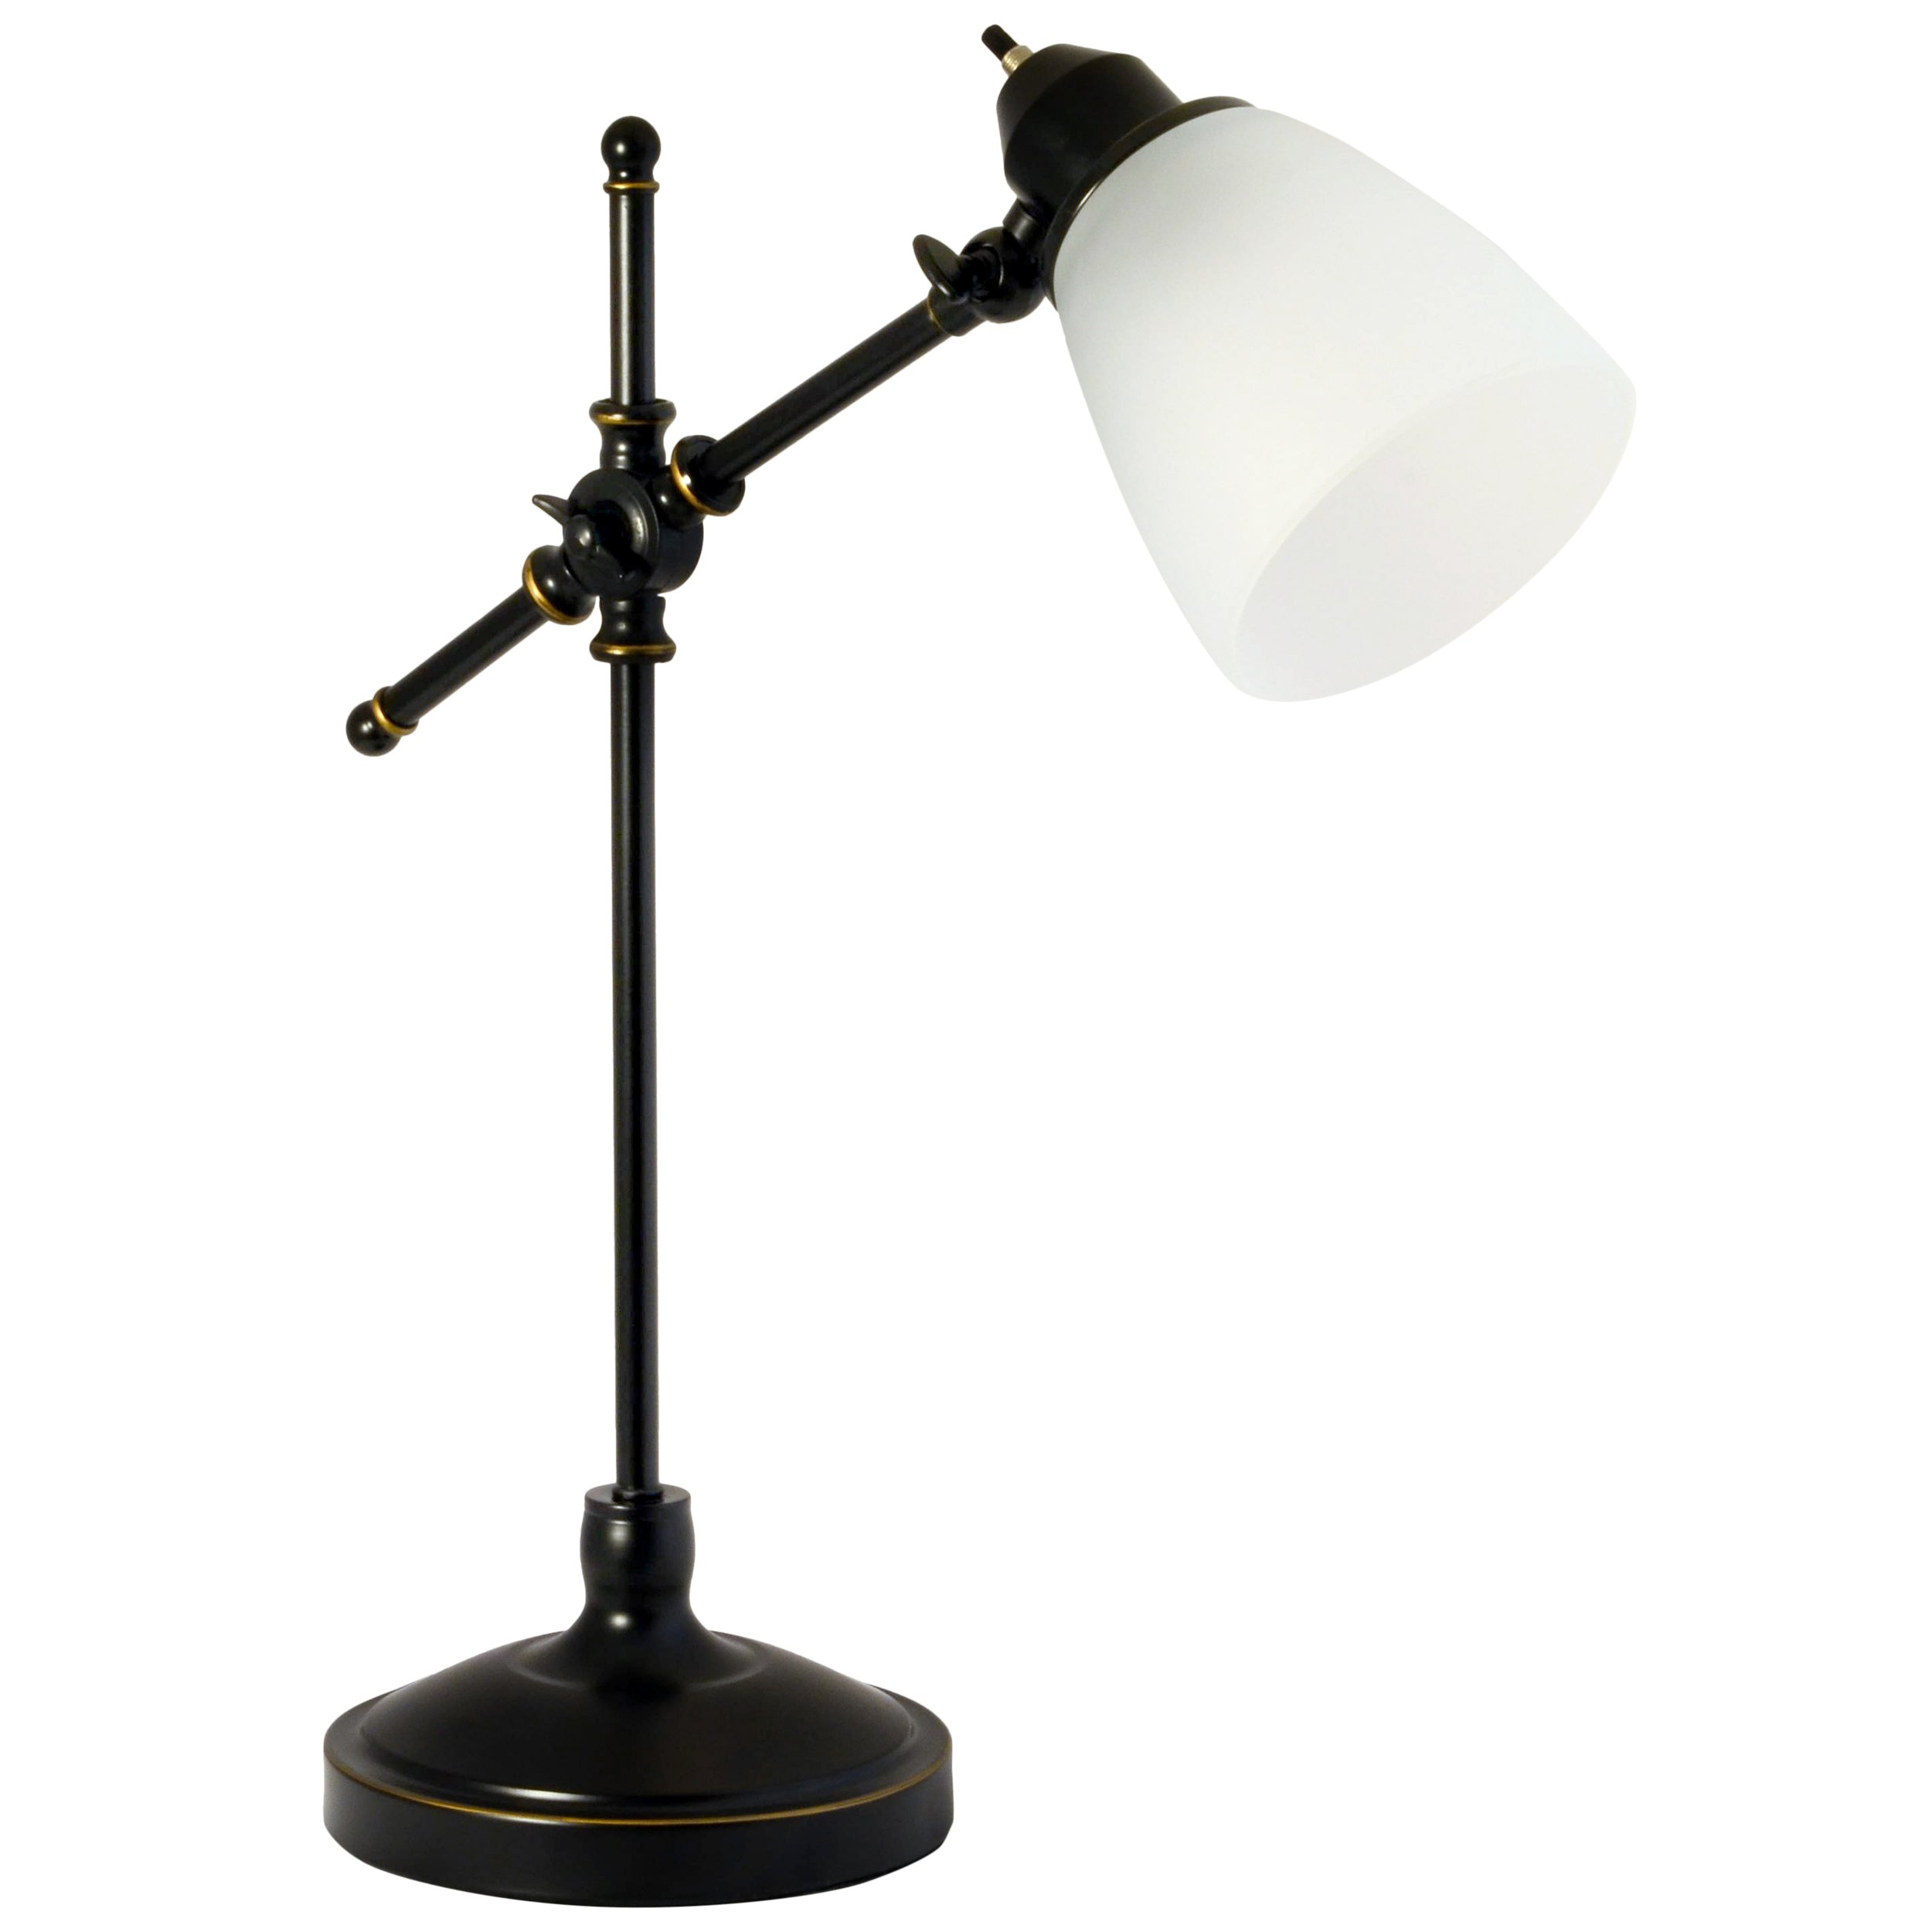 Light Accents Antique Style Desk Lamp With Black With Gold Trim And Frosted White Glass Shade